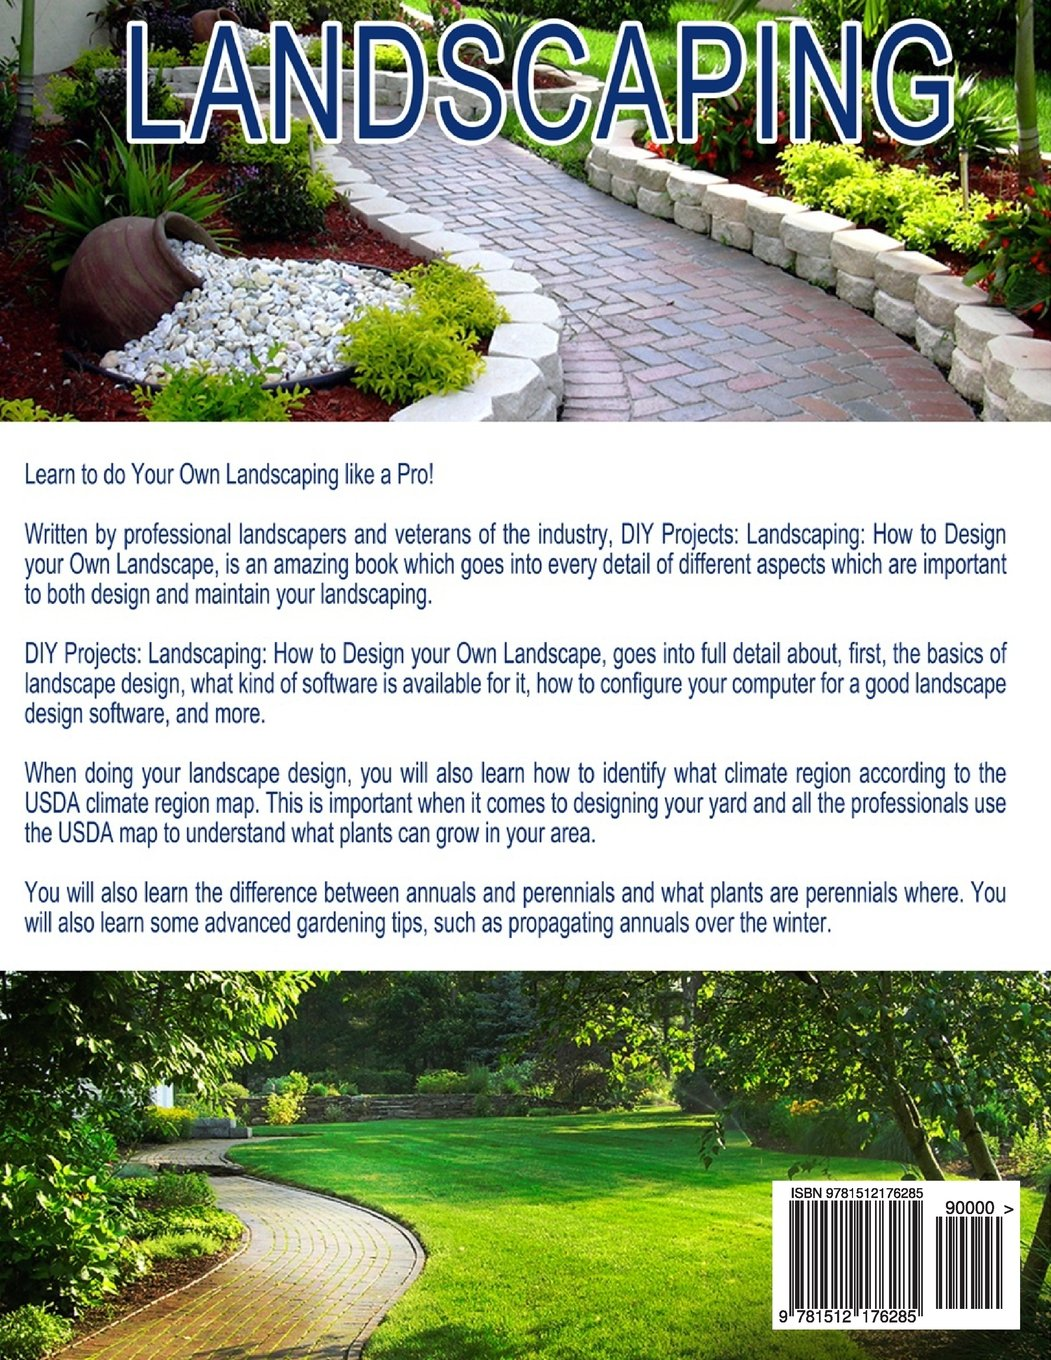 DIY Projects: Landscaping: How To Design Your Own Landscape: Johannes  Poulard: 9781512176285: Amazon.com: Books